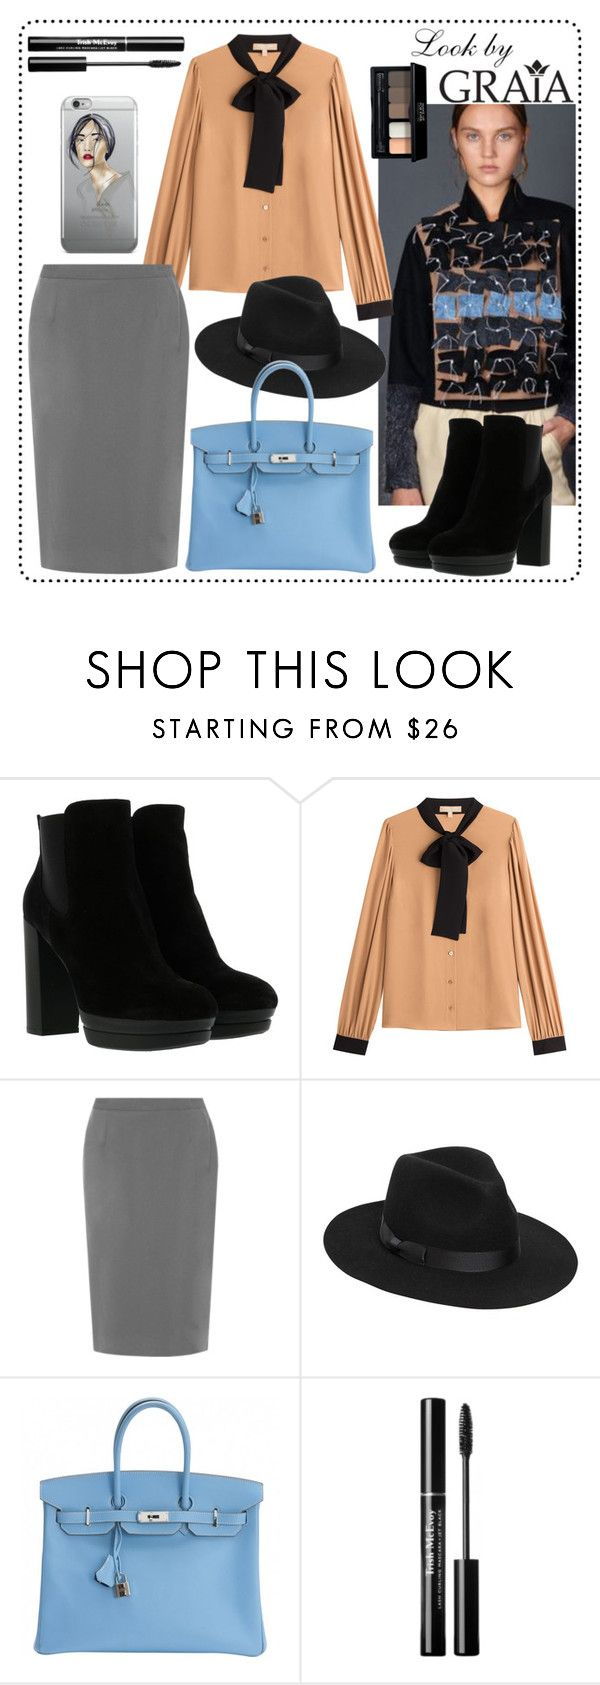 """""""Jacket with removable panel"""" by graiastyle ❤ liked on Polyvore featuring Hogan, Michael Kors, WearAll, Lack of Color, Hermès, MAKE UP FOR EVER, jacket, graiaclothes and GRAIA"""